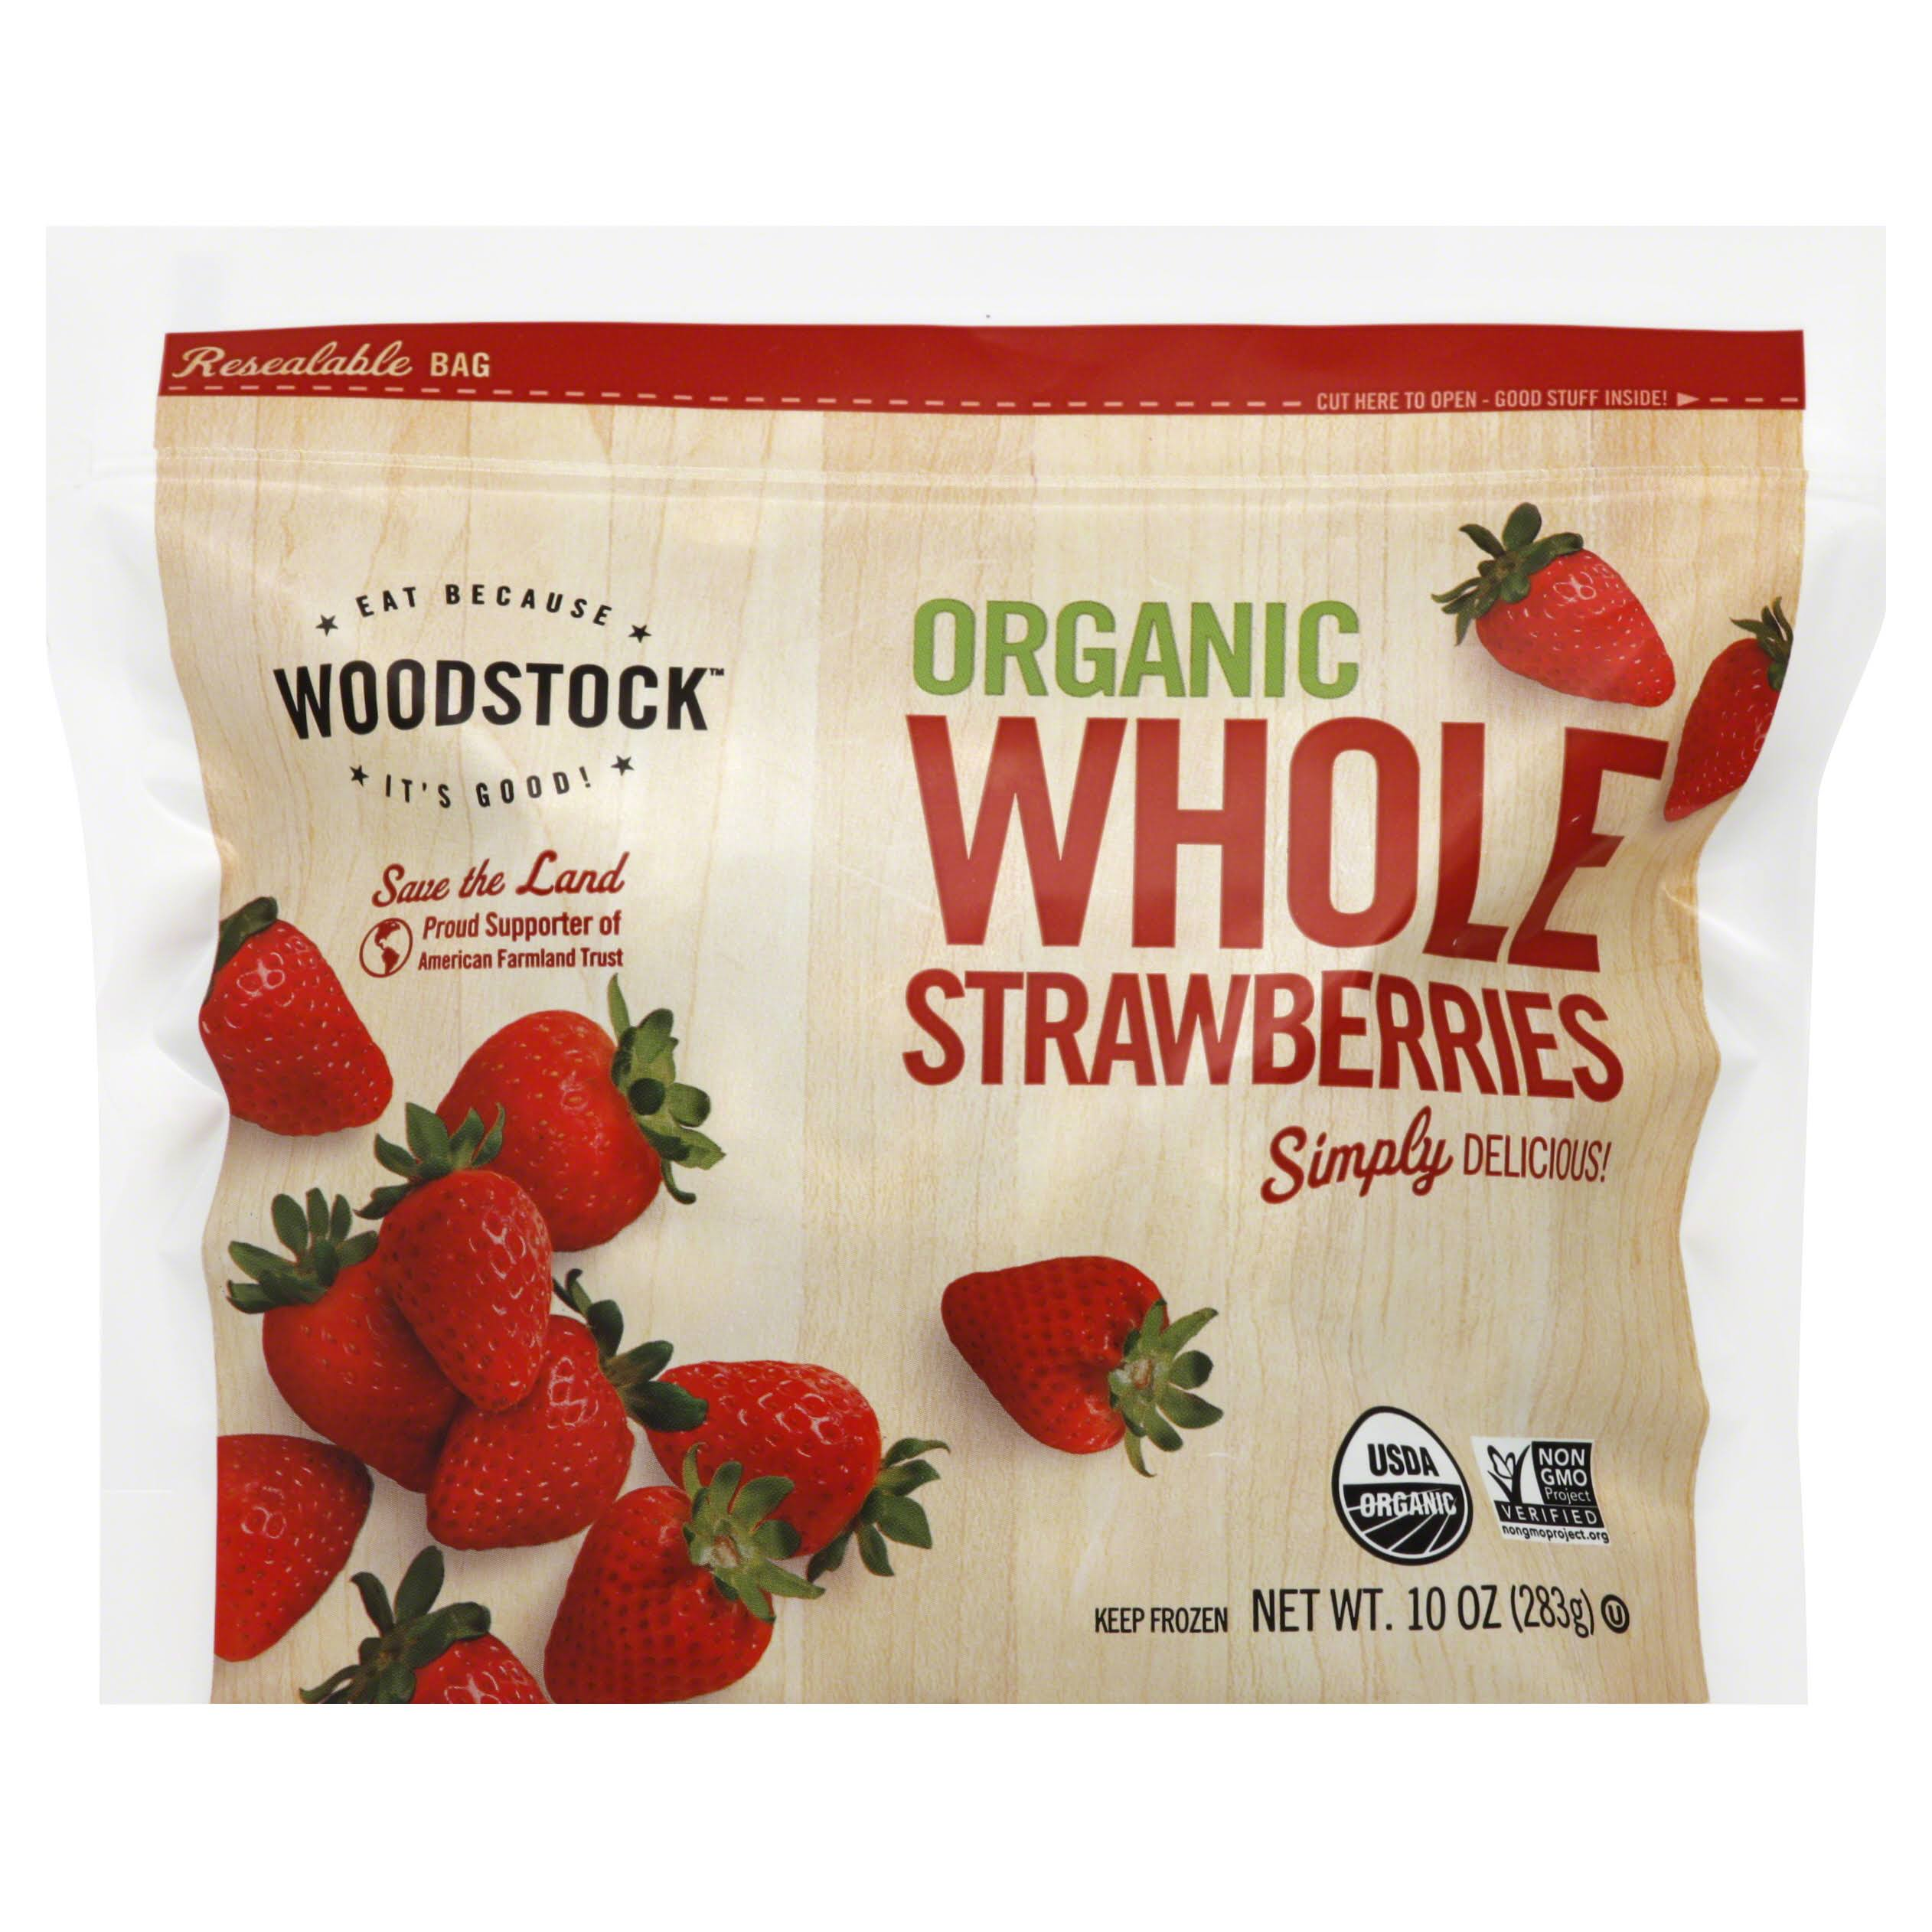 Woodstock Strawberries, Whole, Organic - 10 oz